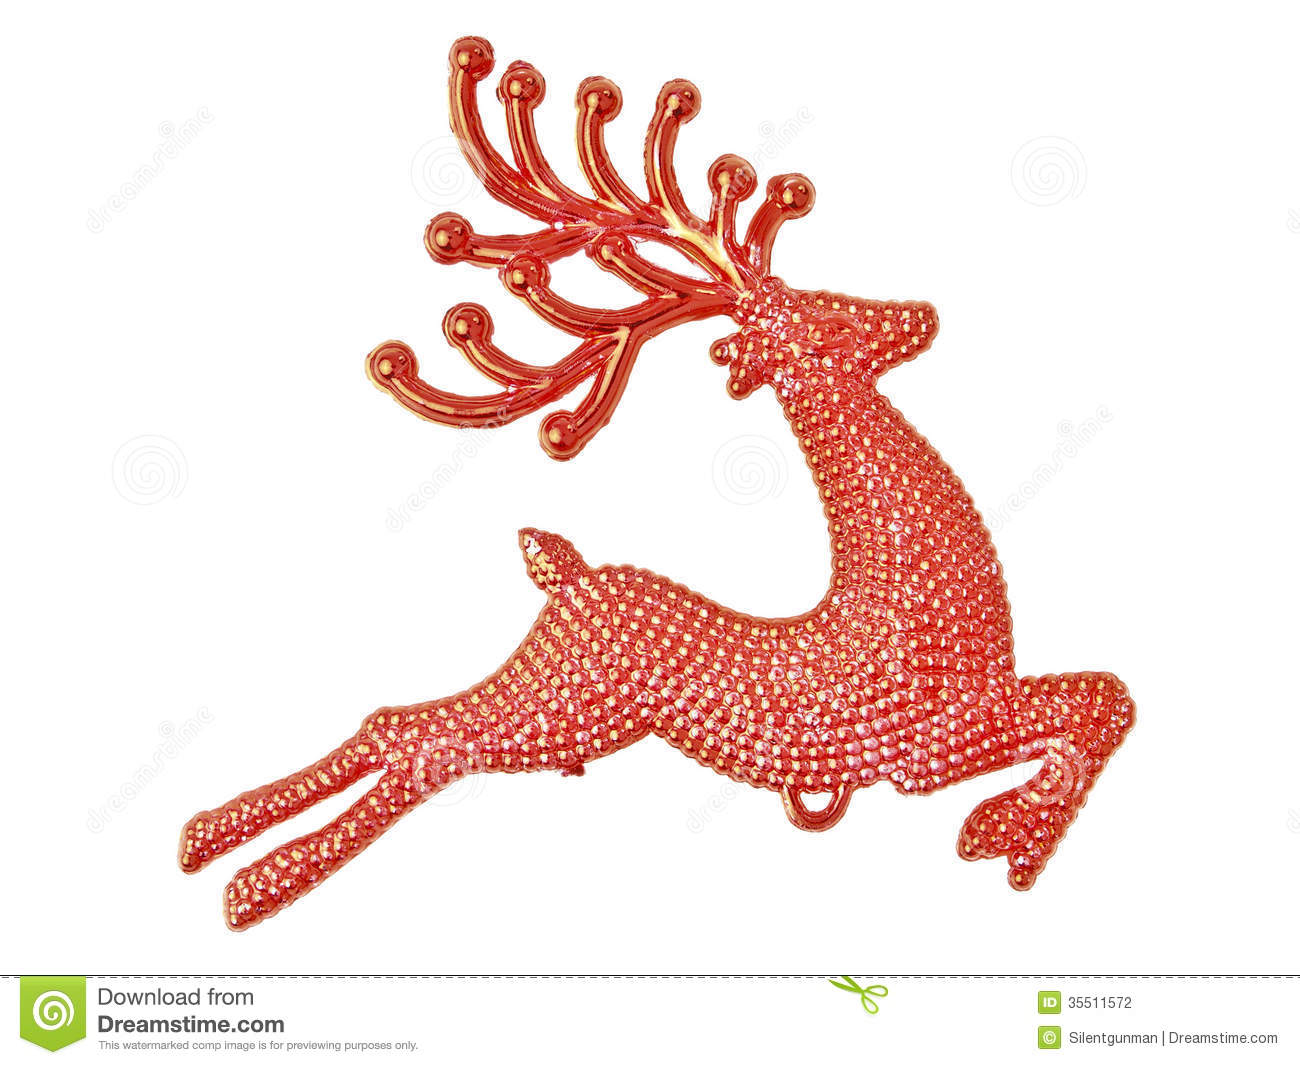 greatest christmas reindeer decoration red reindeer christmas stock christmas reindeer decoration red reindeer christmas stock 1300 x 1065 166 kb jpeg - Christmas Reindeer Decorations